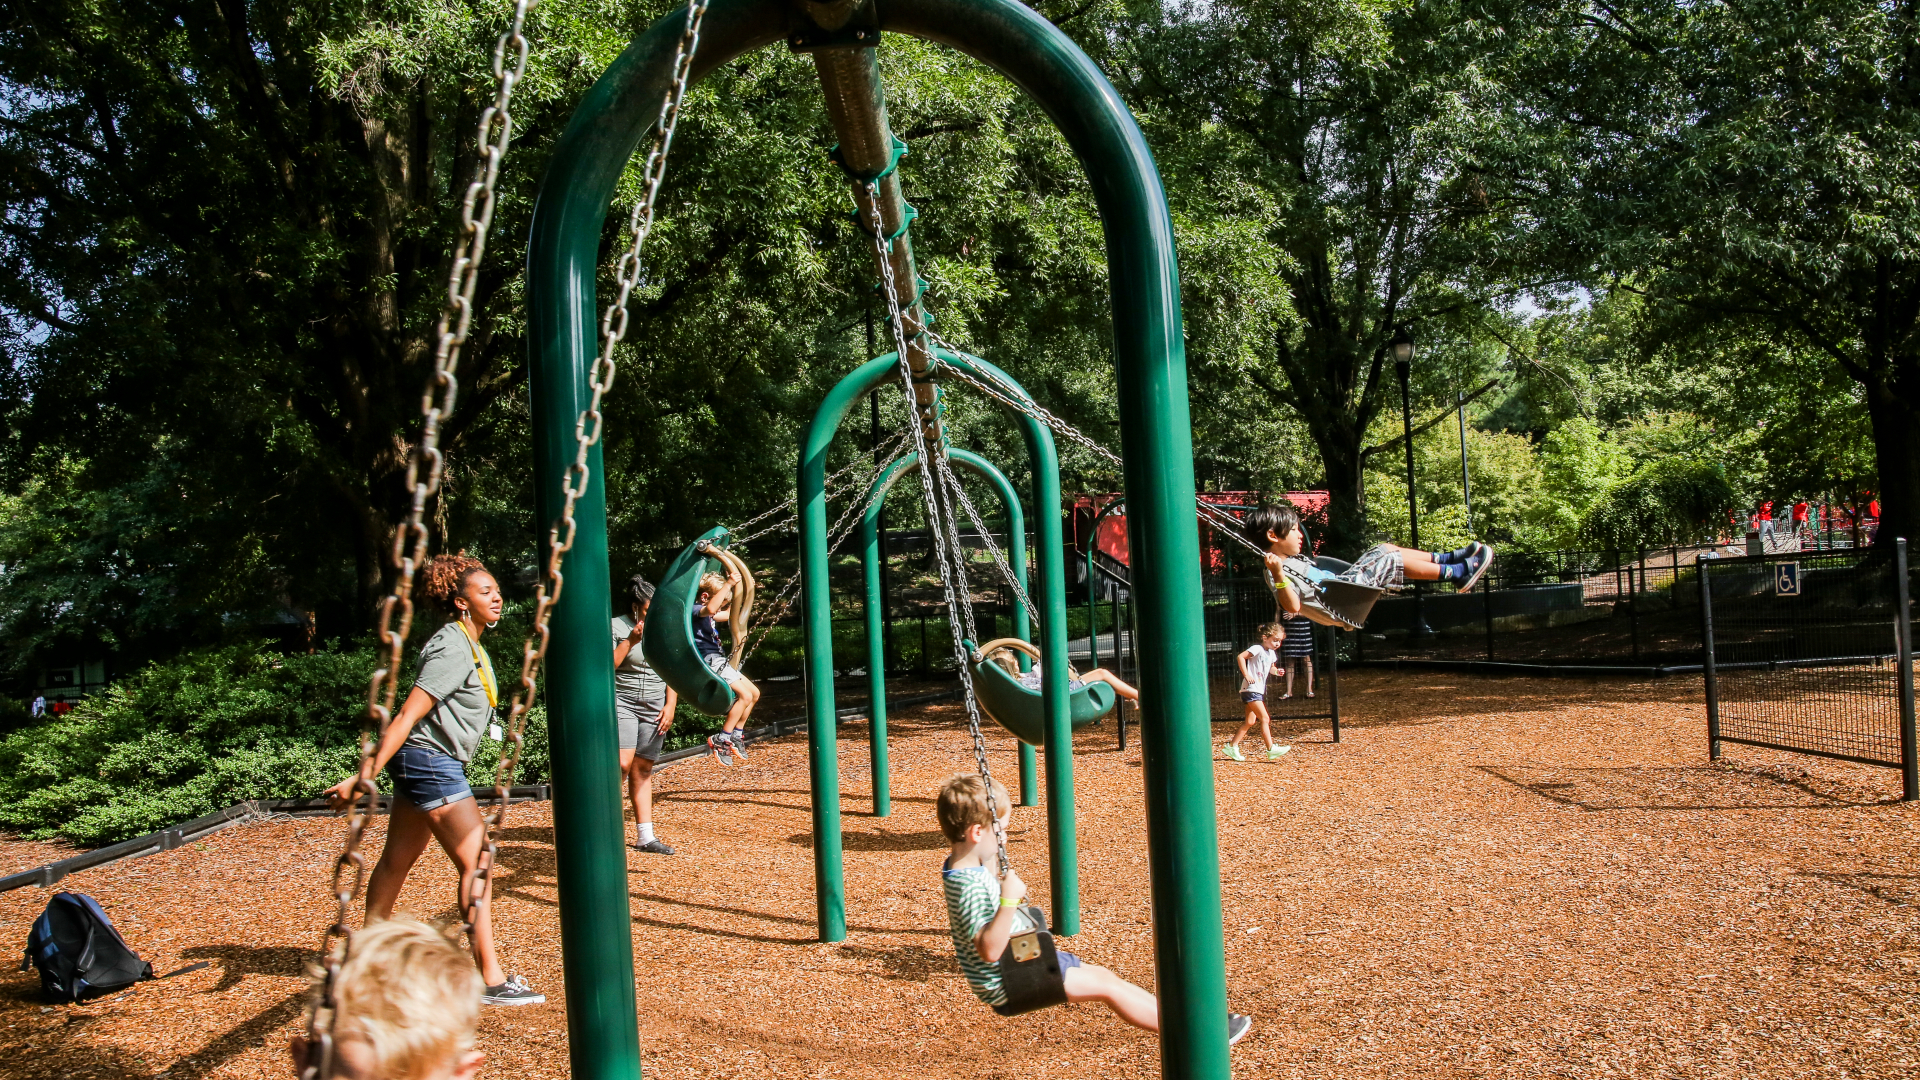 Kids swinging at Pullen Park playground